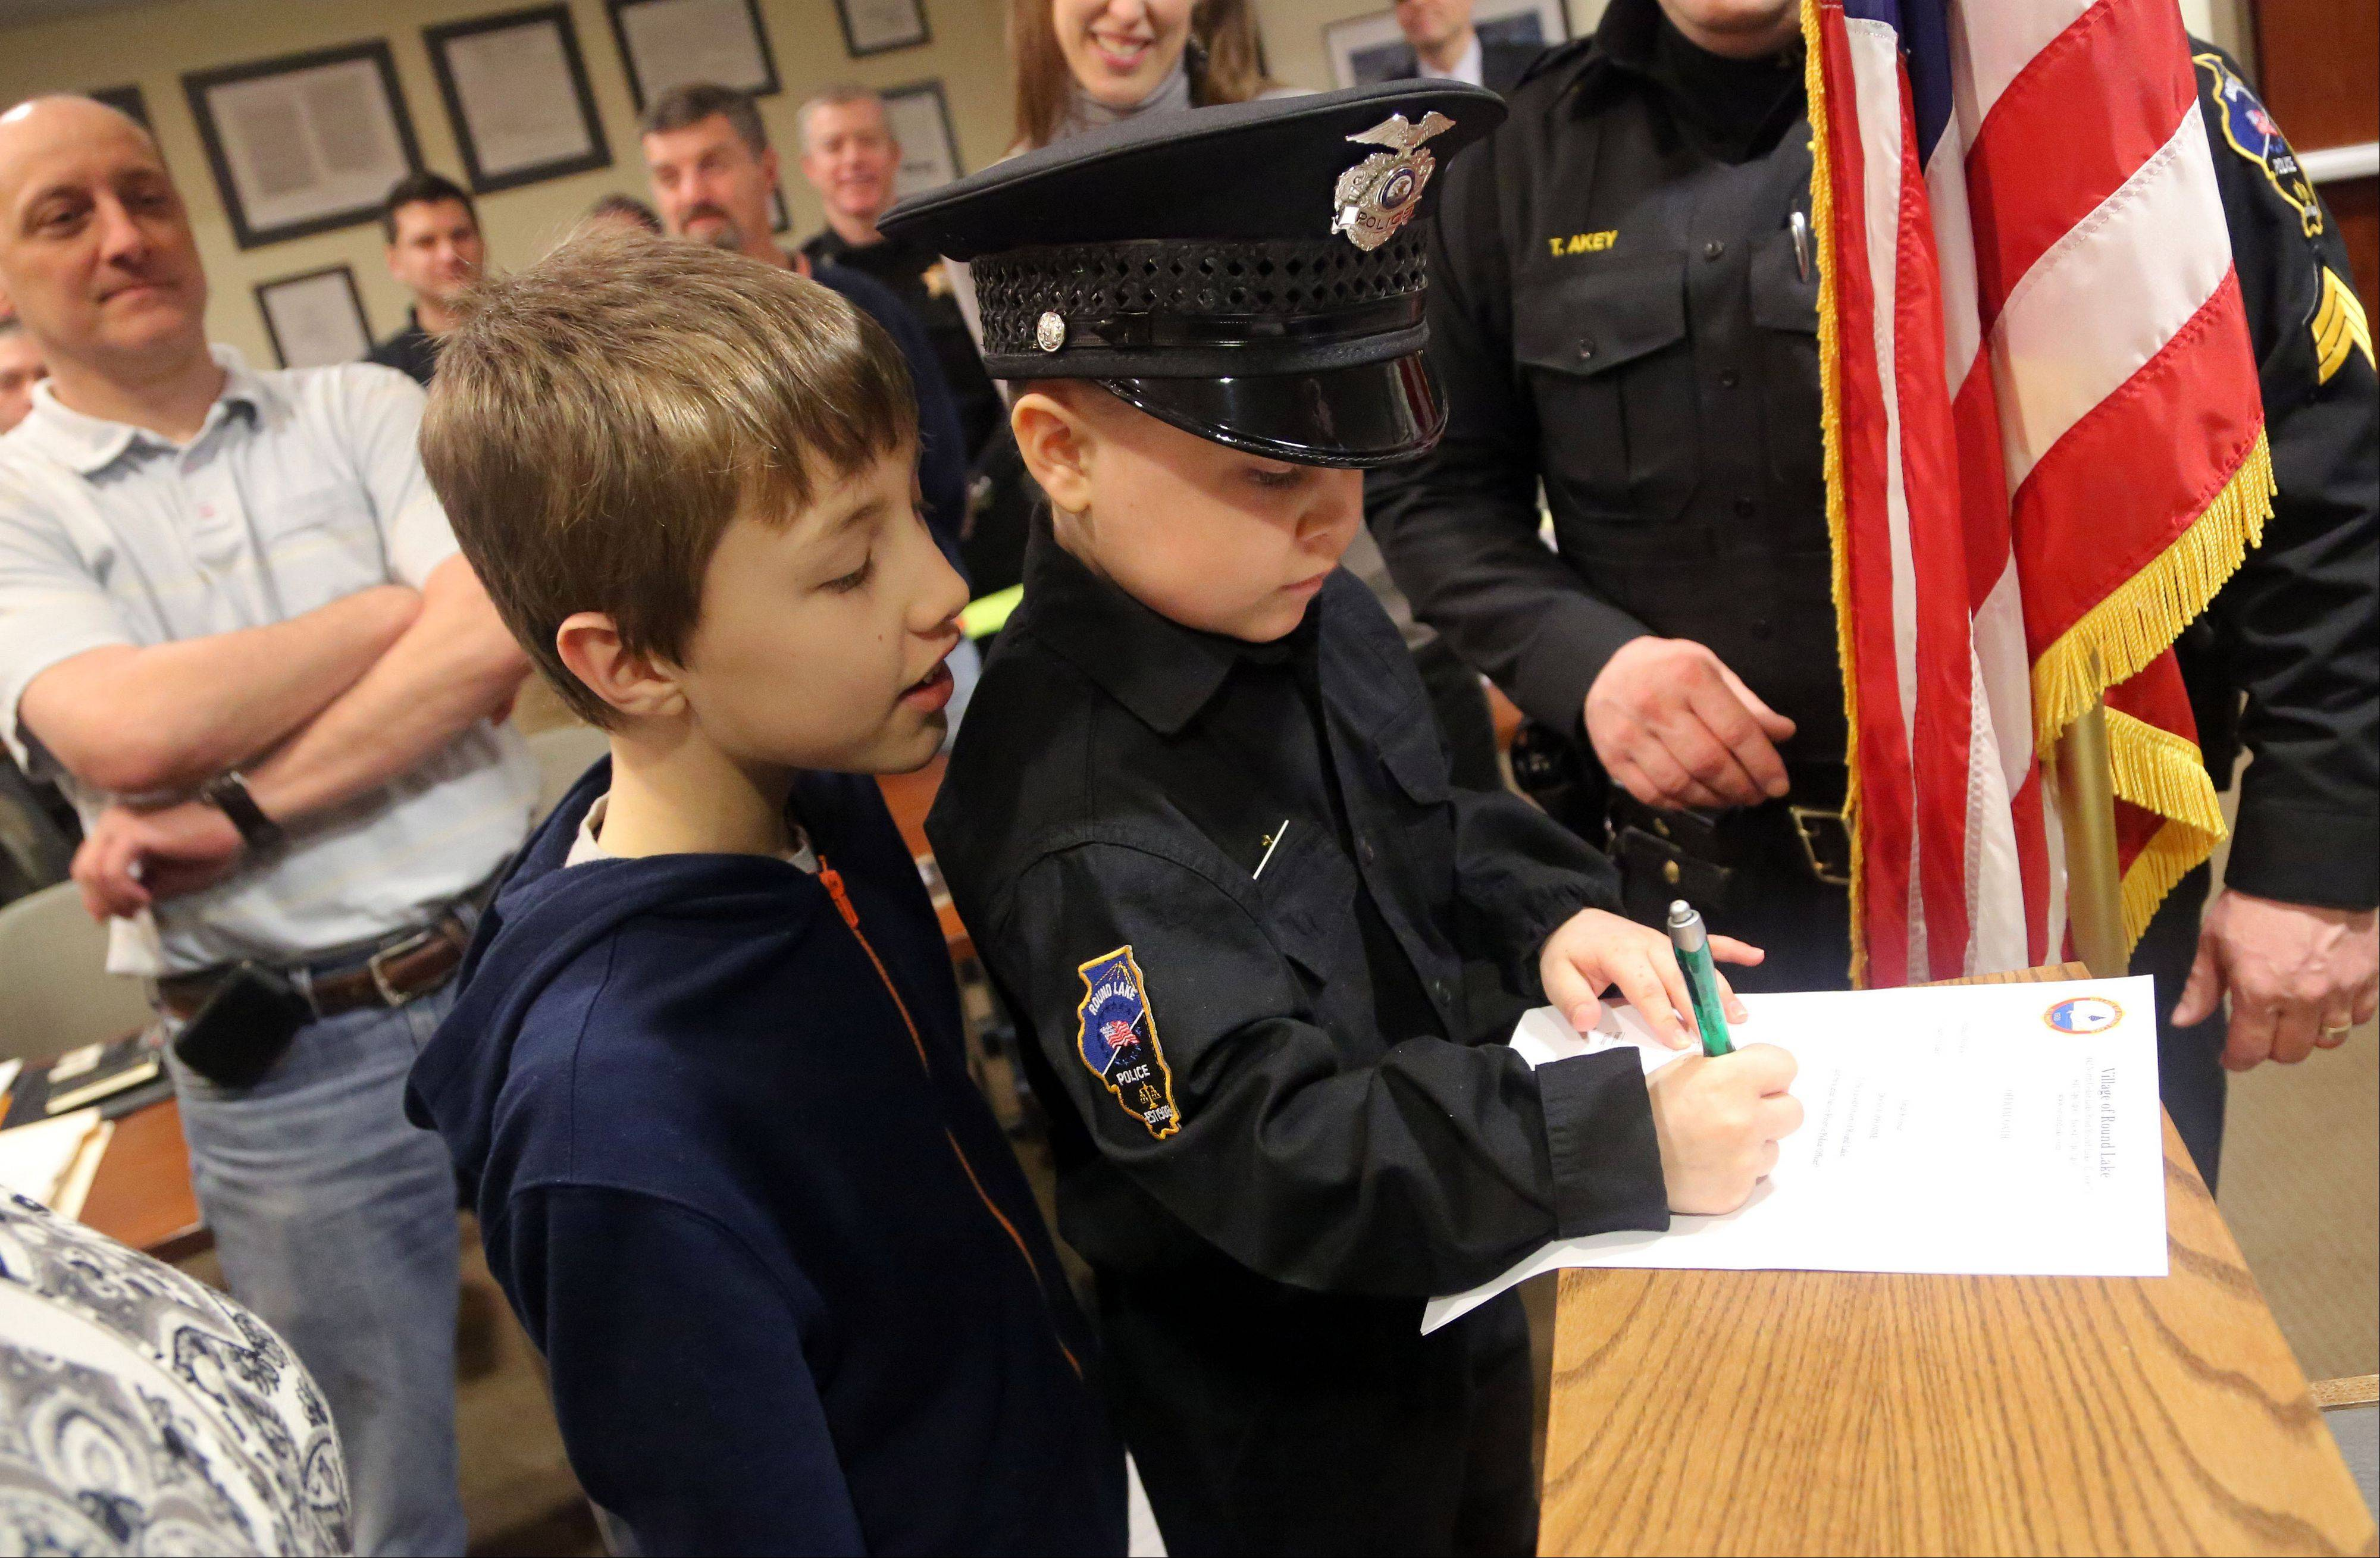 Six-year-old Jonah Kolesar, right, signs an official oath after being sworn in Monday as a junior reserve police officer as his 9-year-old brother Nicholas looks on during the Round Lake village board meeting. Jonah suffers from an autoimmune disease called IPEX Syndrome.